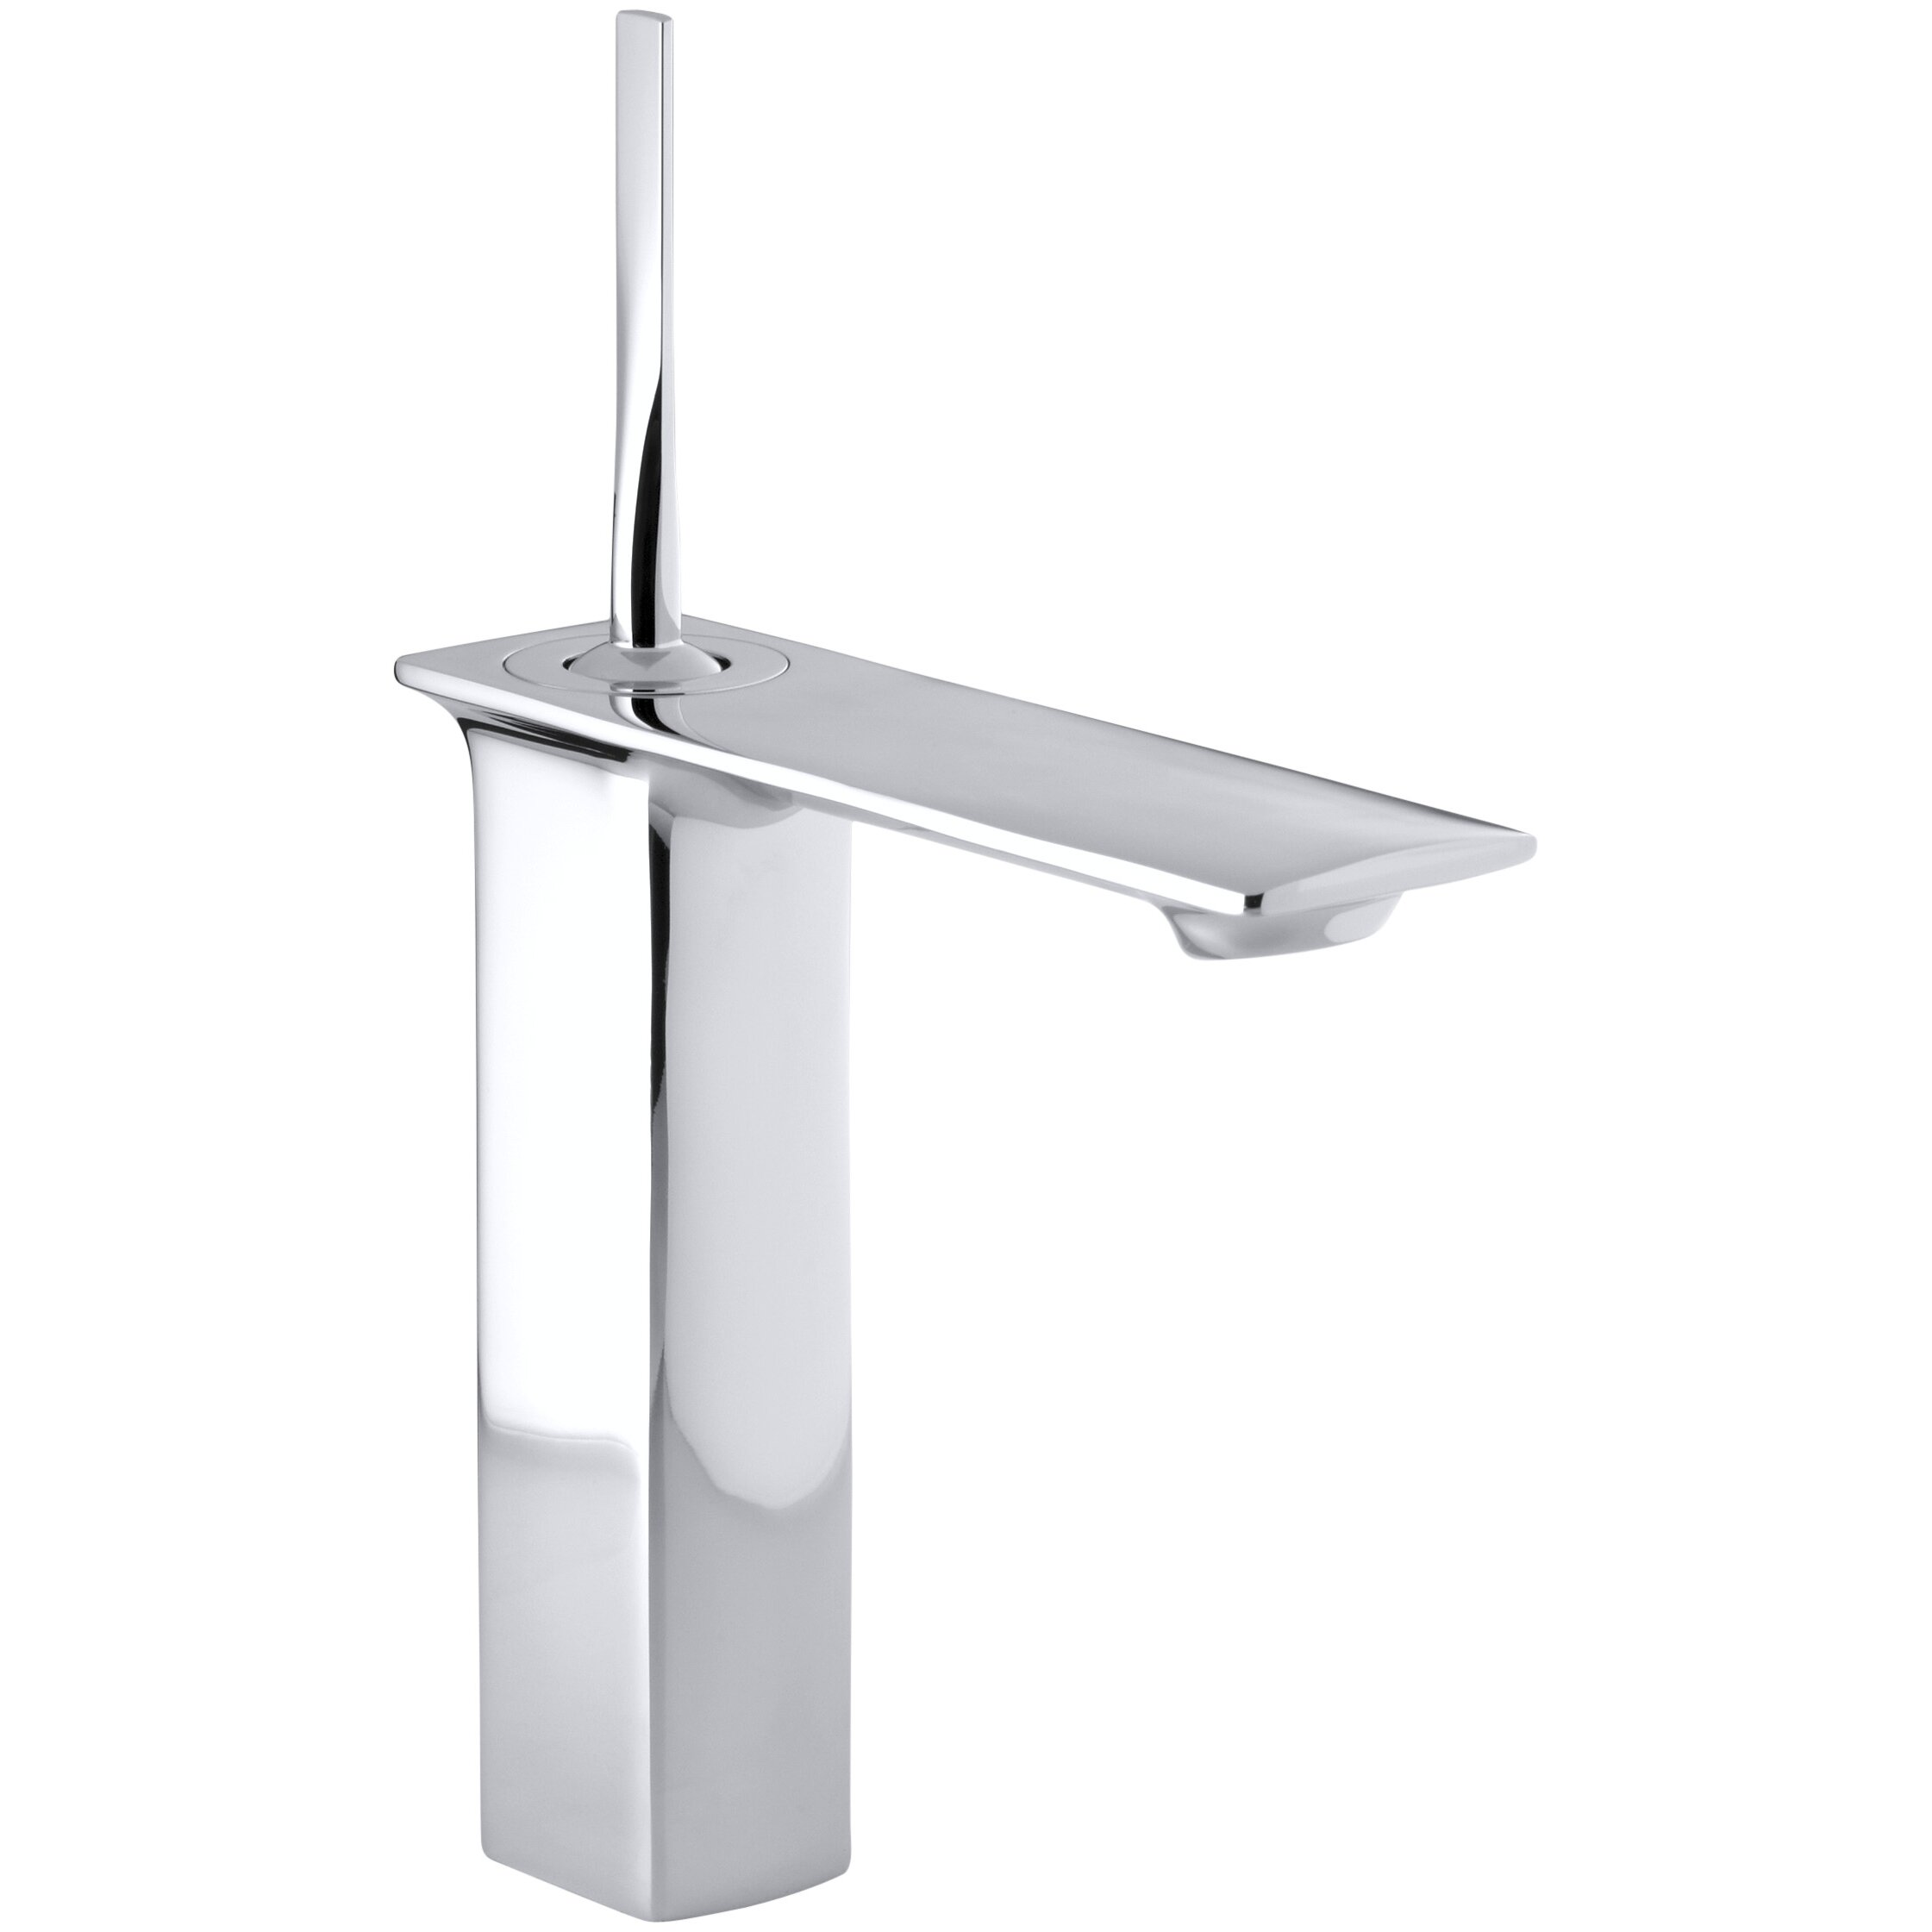 Kohler Stance Tall Single Hole Bathroom Sink Faucet  : Kohler Stance Tall Single Hole Bathroom Faucet with Single Lever Handle 14761 4 from www.wayfair.com size 2241 x 2241 jpeg 146kB